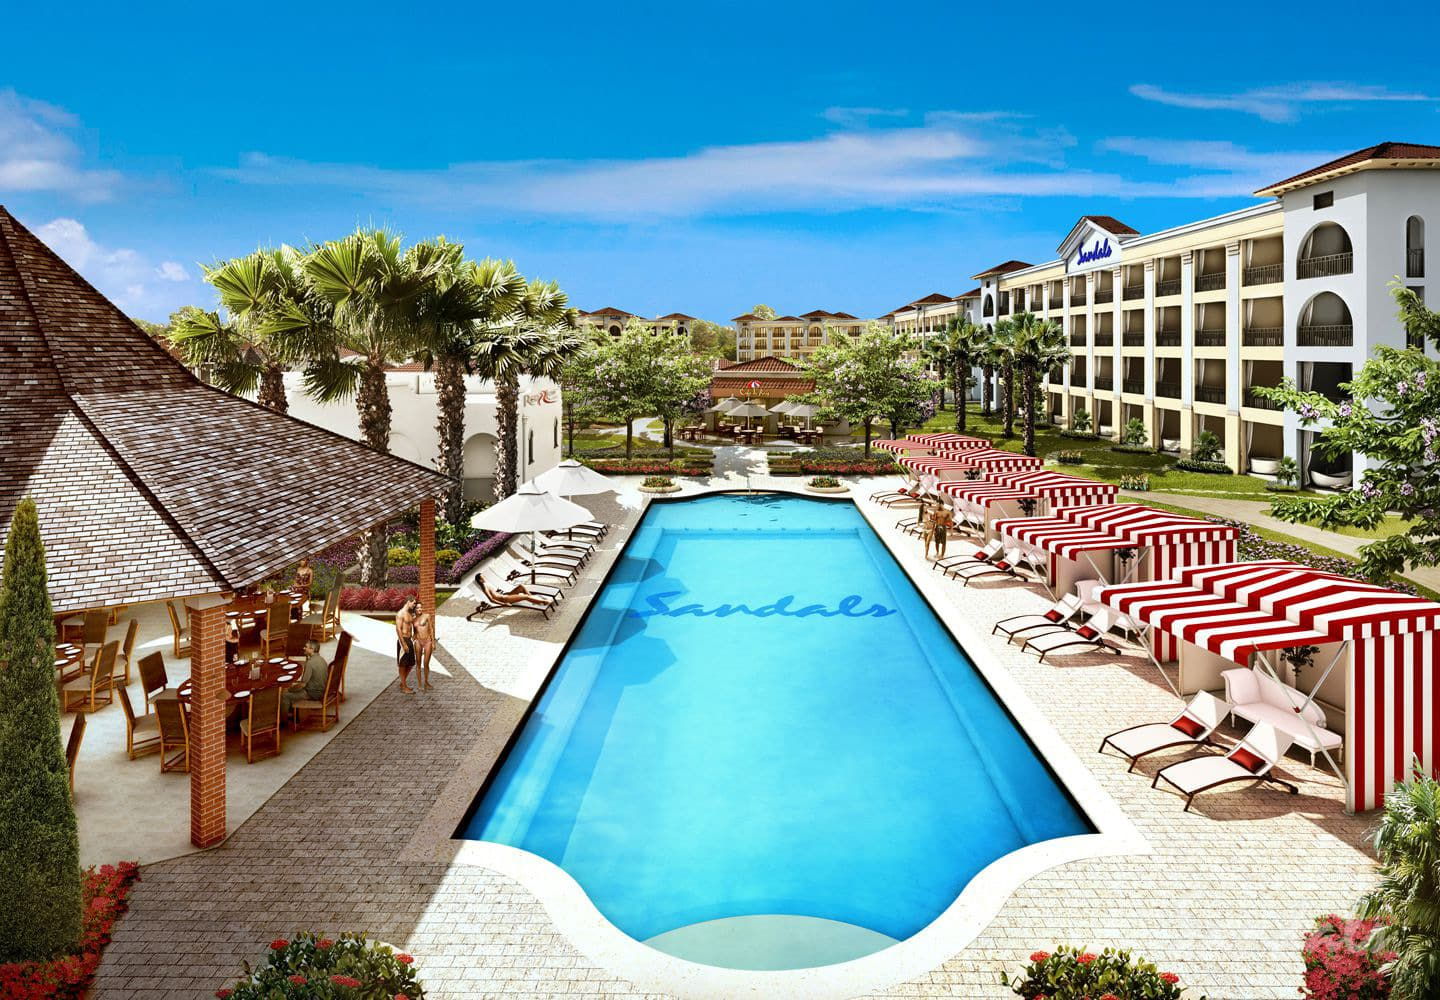 Pool at the sandals barbados resort adult only vacations can be booked with southern travel